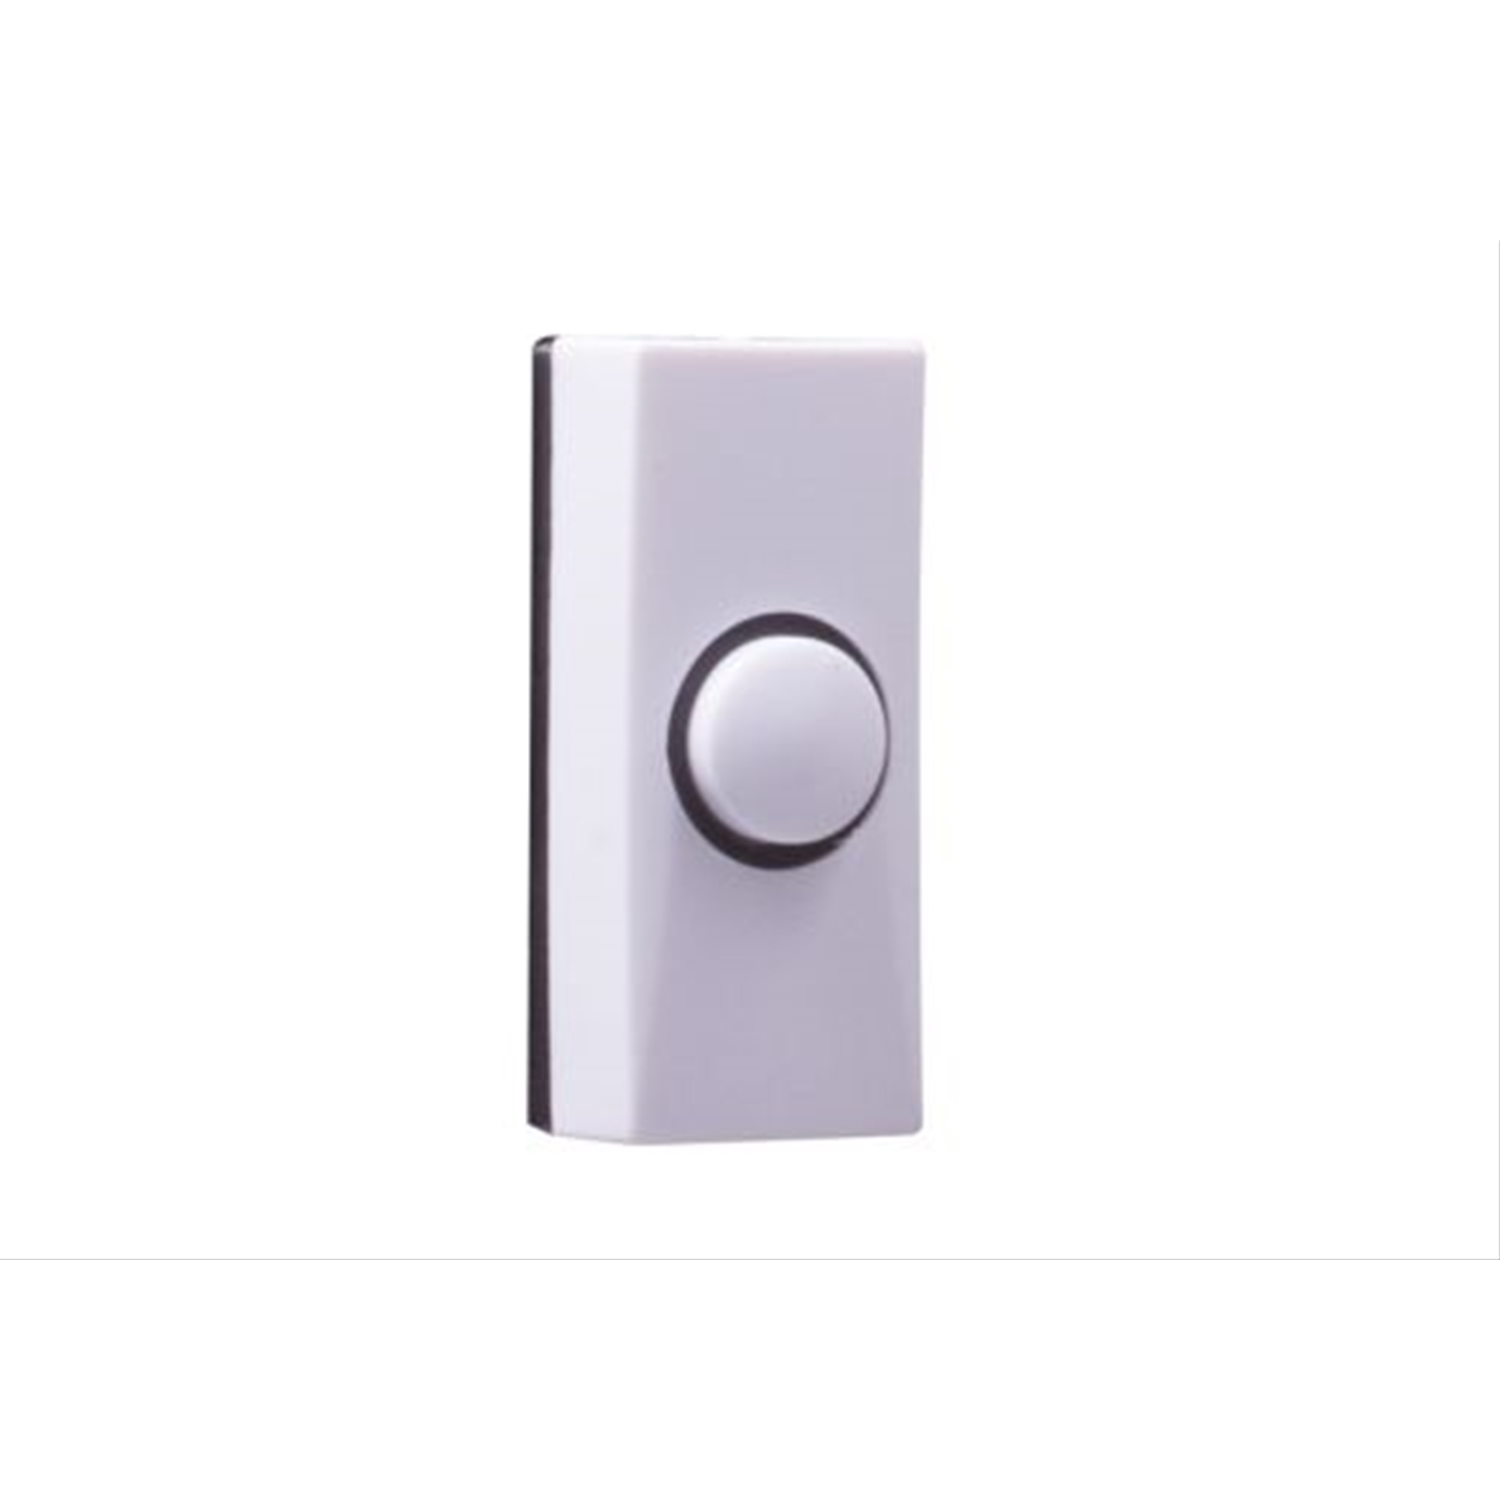 Image of Byron Wired Plastic Bell Push White